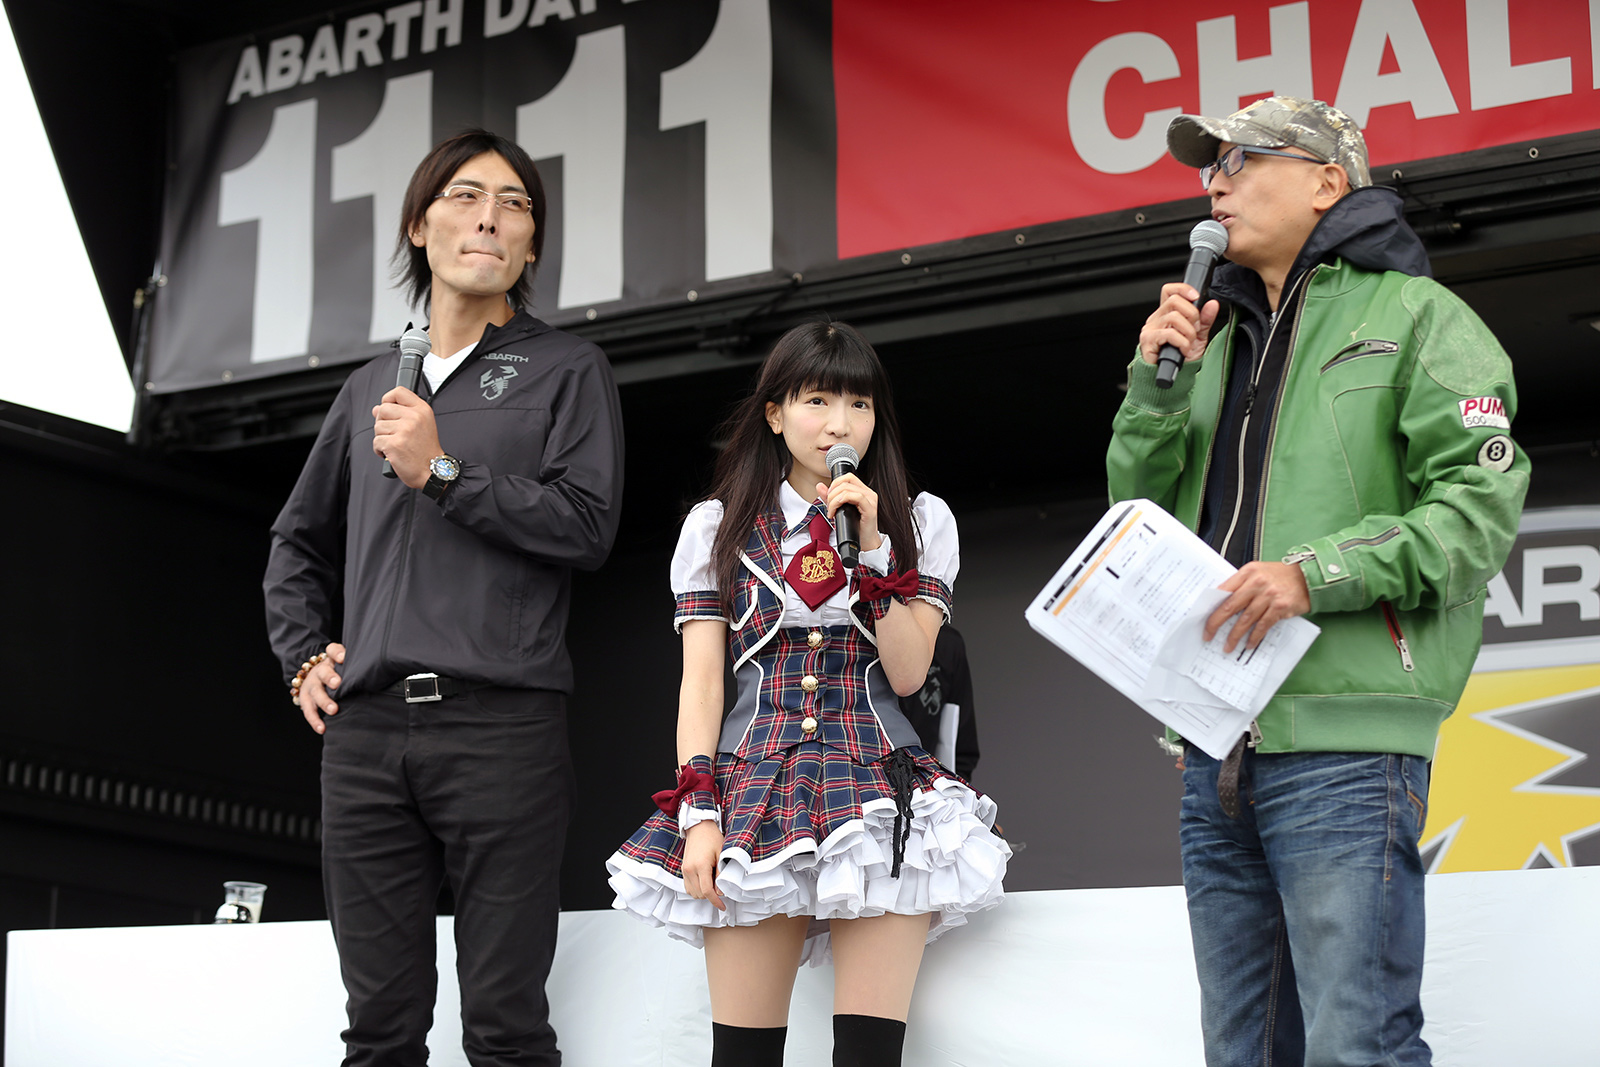 Abarth_day_17